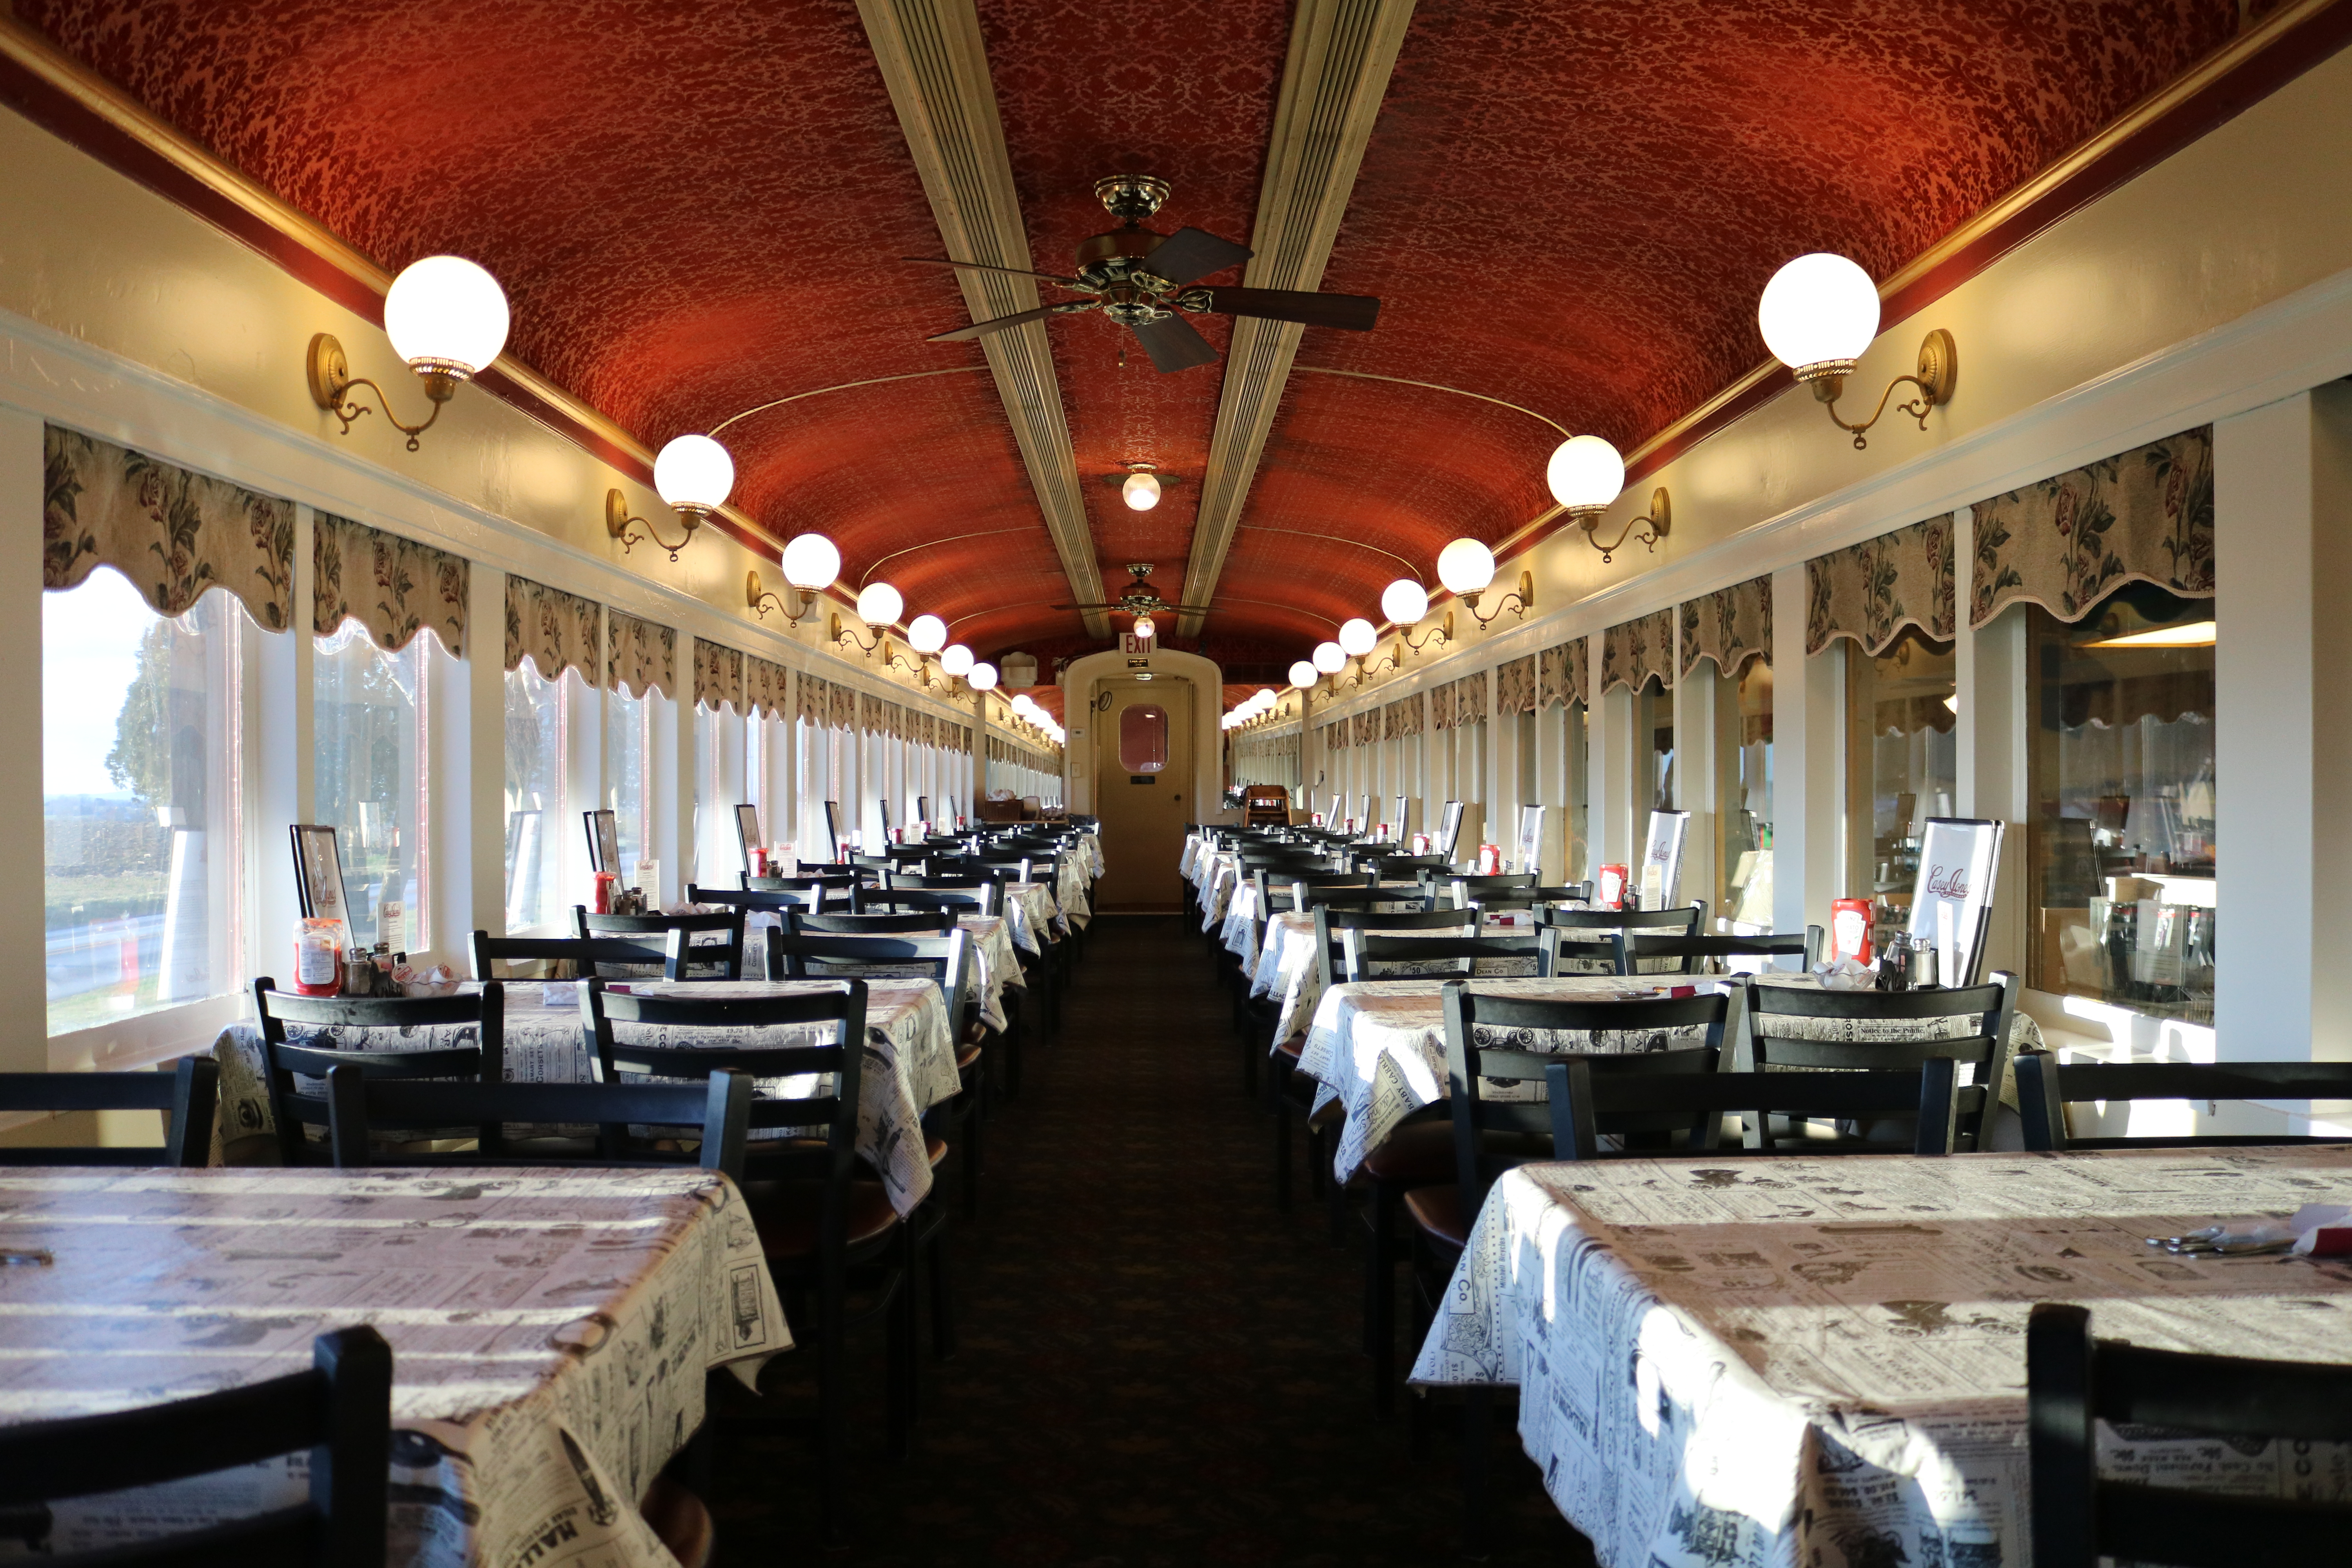 interior of 1920's era Pennsylvania Railroad Dining Car